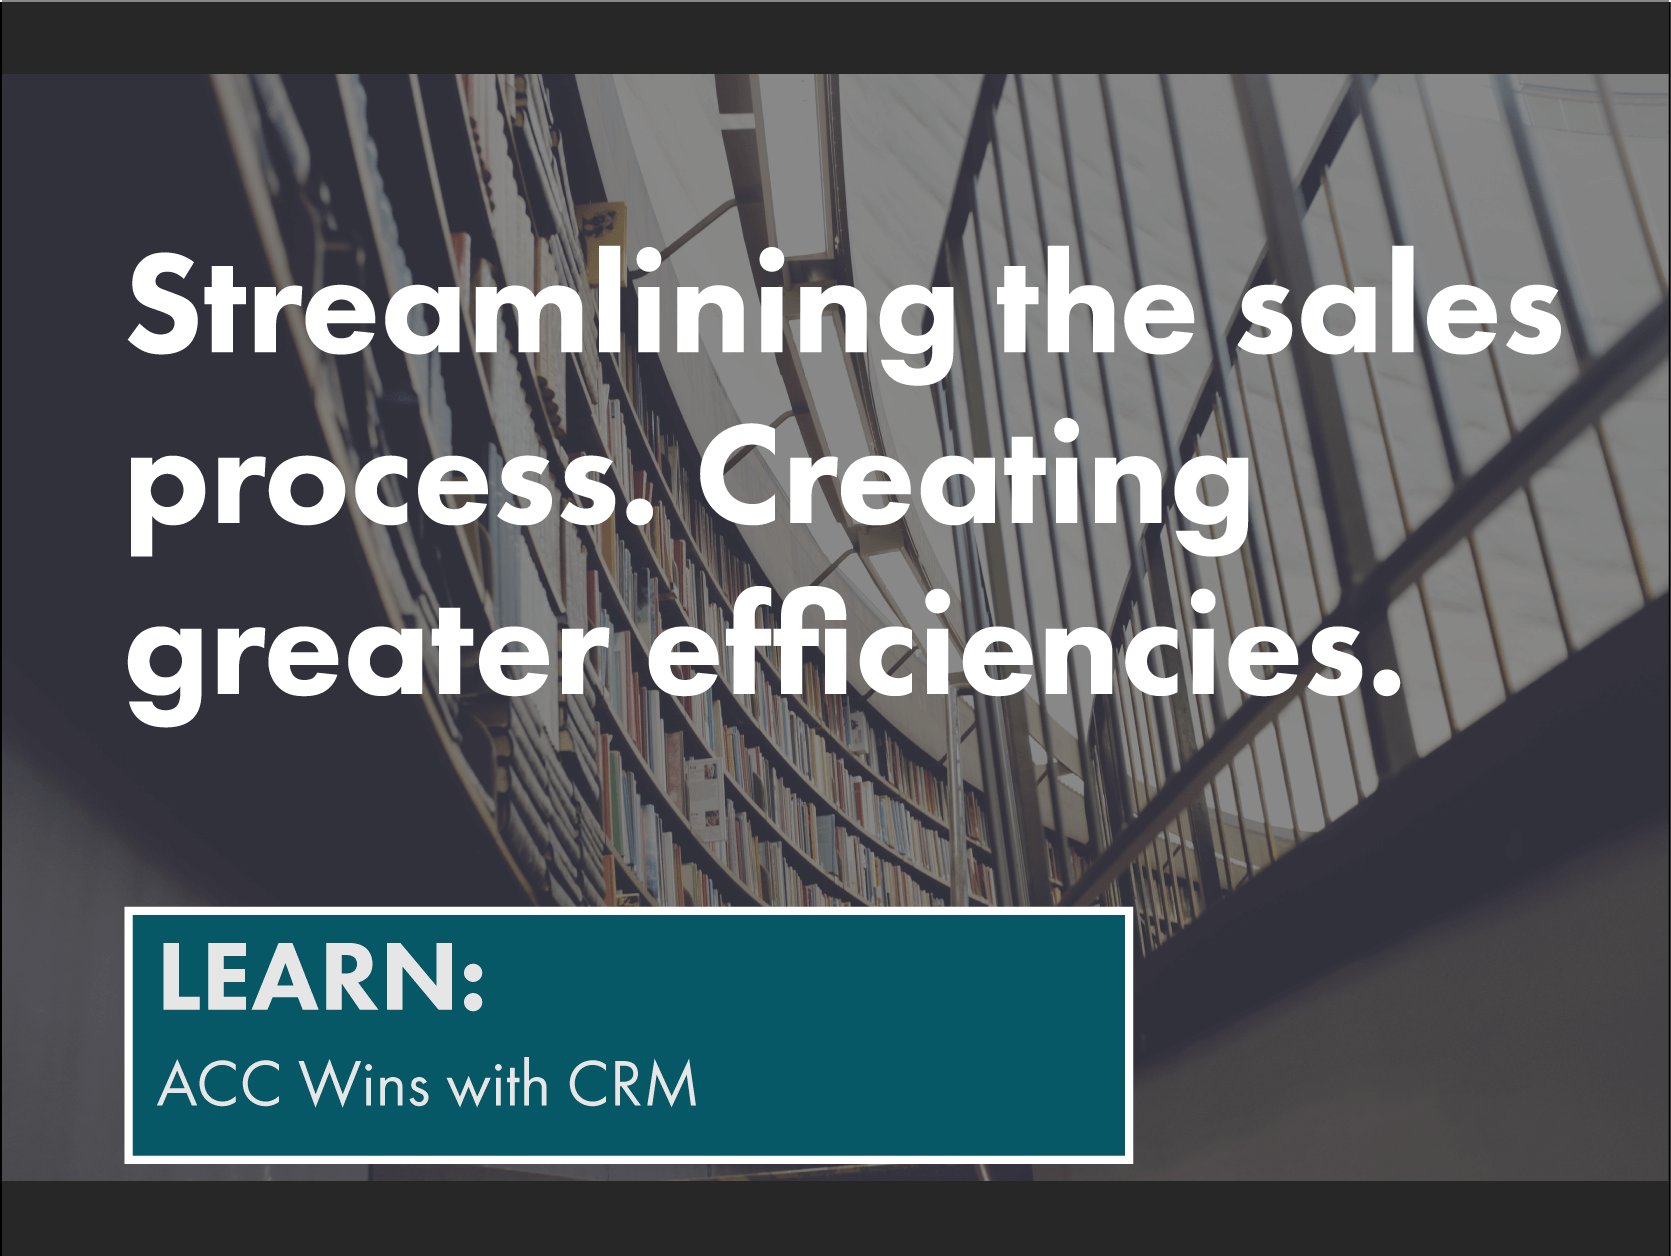 ACC wins with CRM- learn